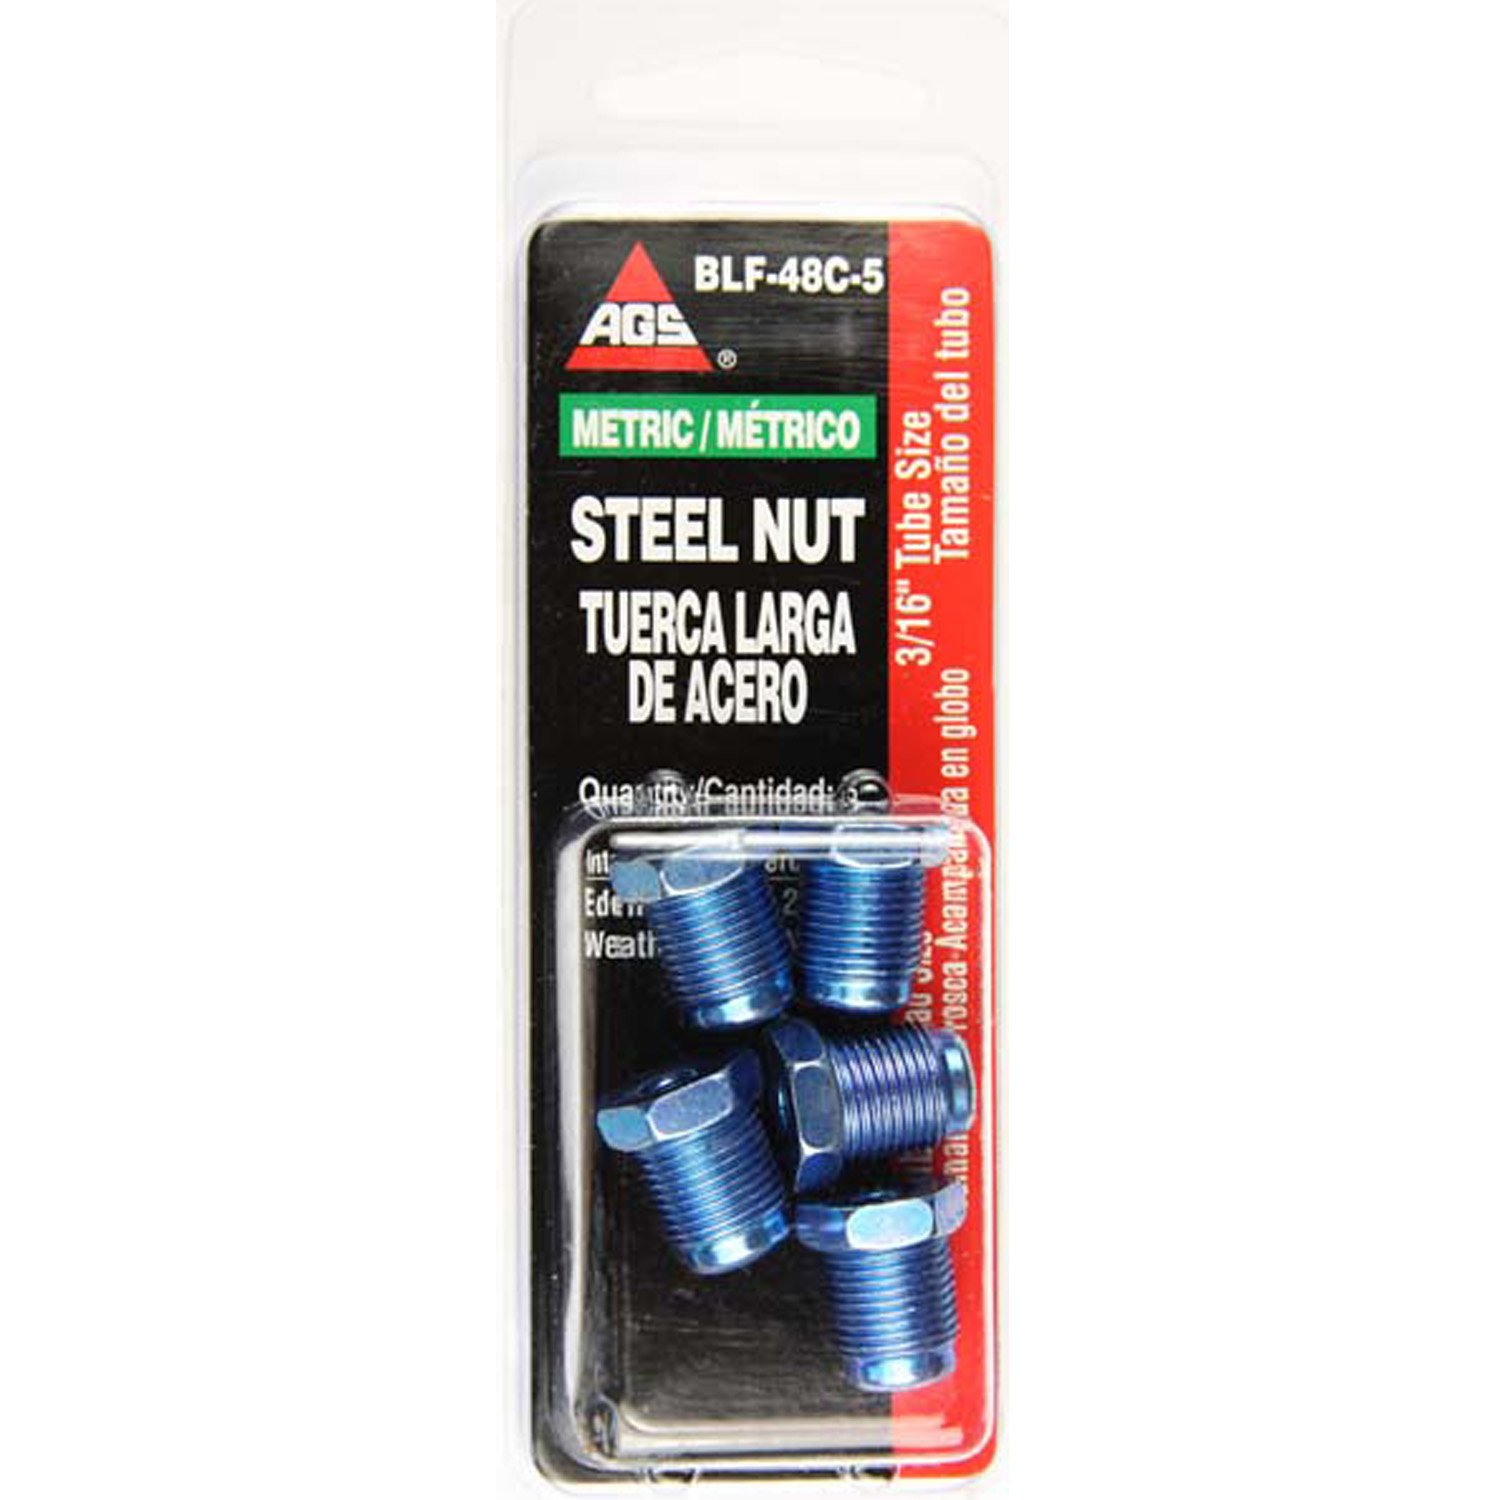 Steel Tube Nut, 3/16 (M12x1.0 Bubble), 5/card AGS BLF-48C-5